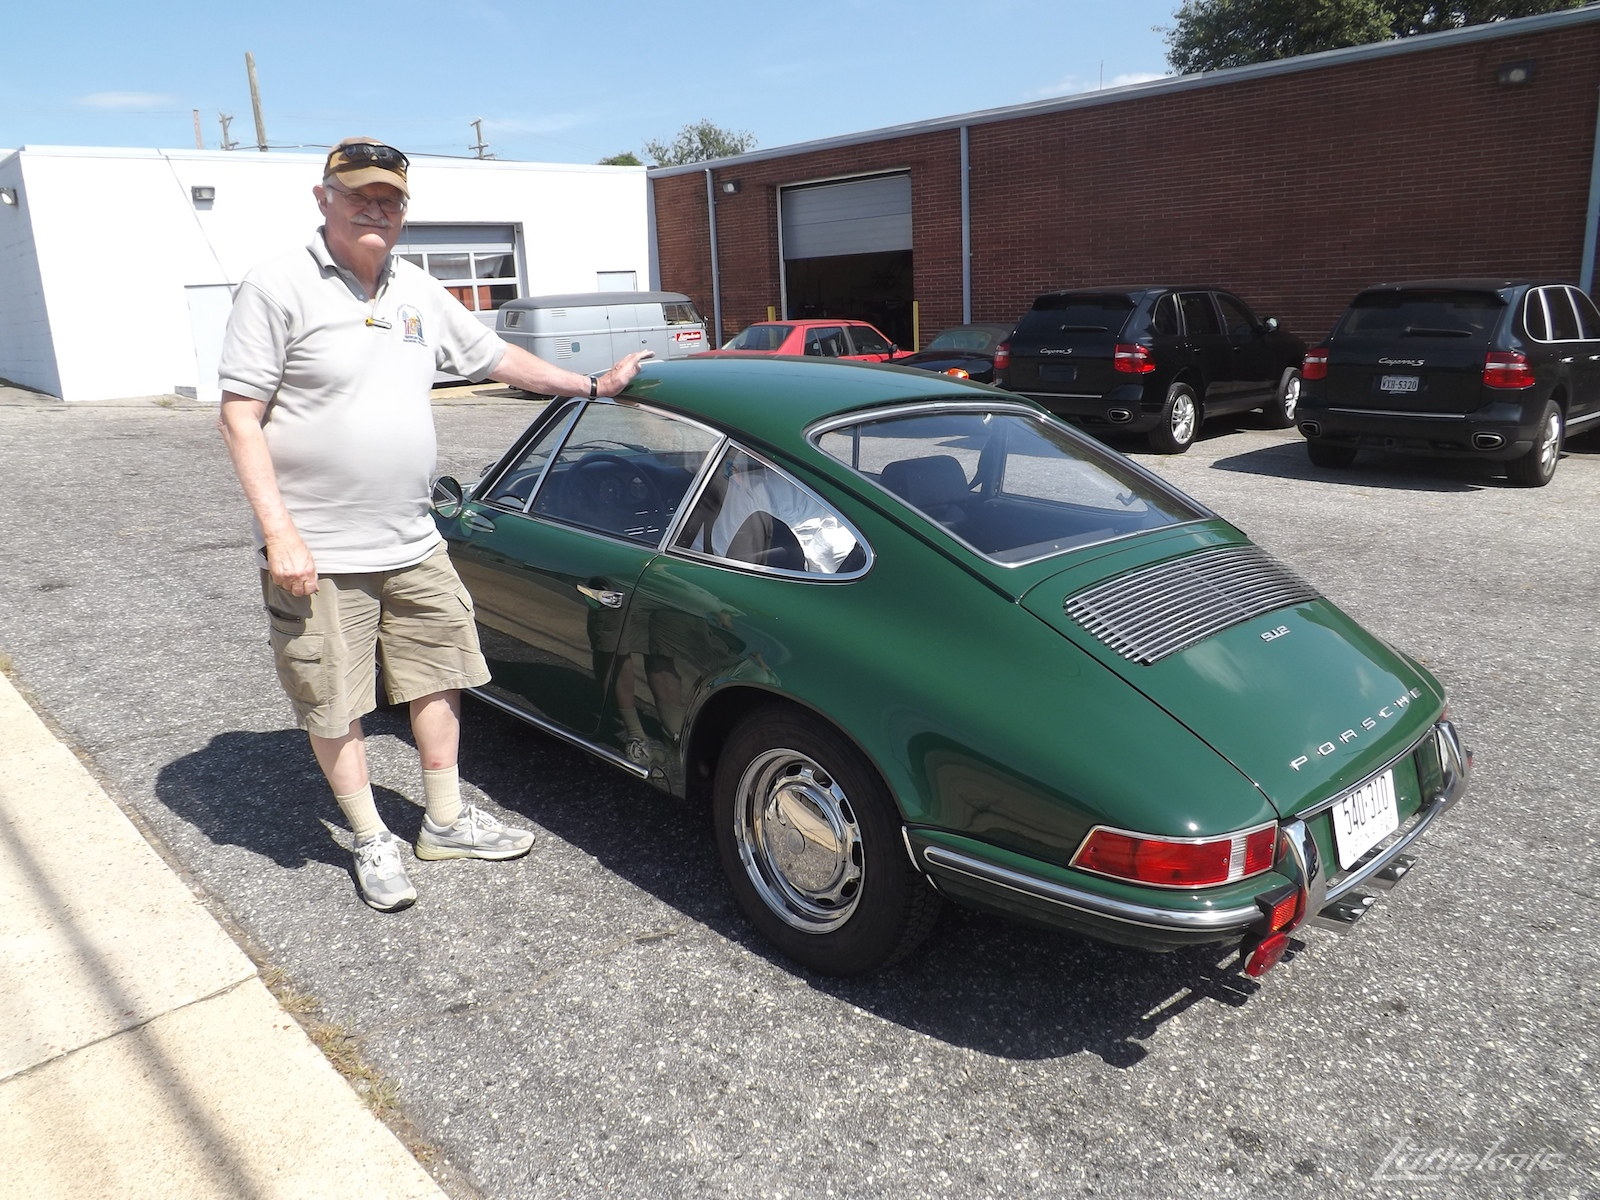 A freshly restored Irish Green Porsche 912 and the proud owner pictured in the Lufteknic parking lot.